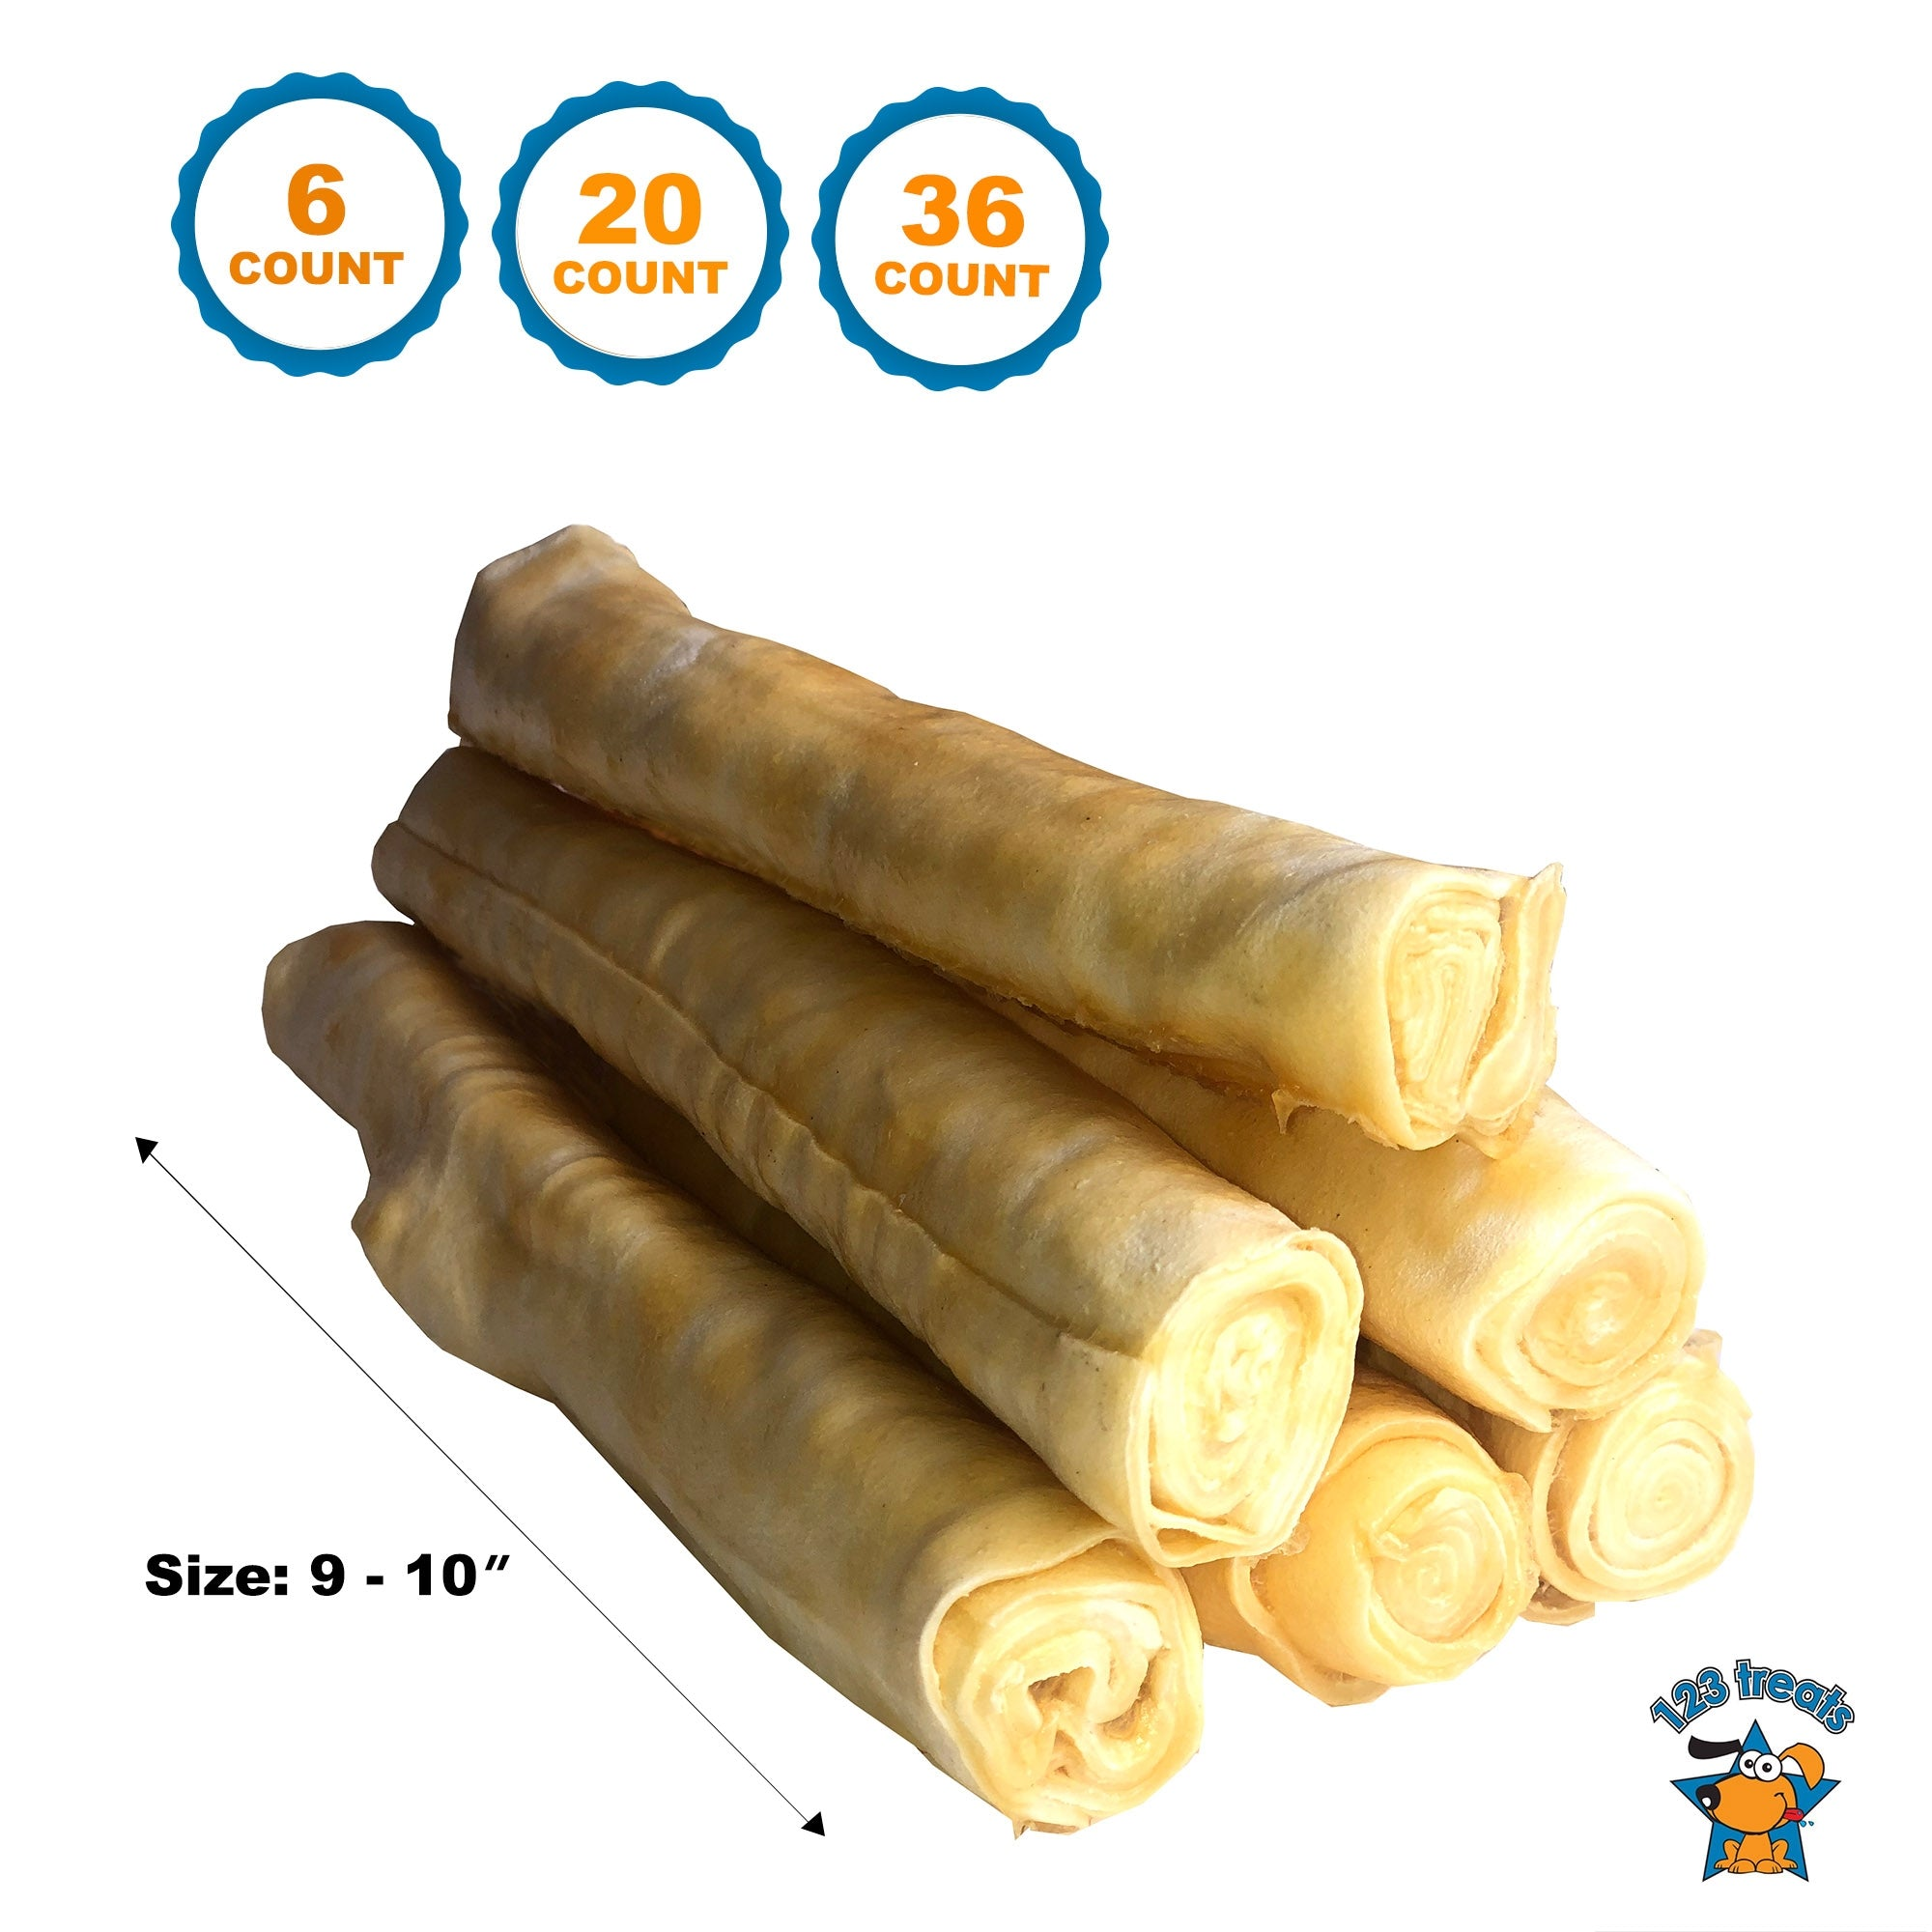 "9"" - 10"" Rawhide with Chicken Retriever Roll Delicious Dog Stick Chews - All-Natural Grass-Fed Free-Range Dog Chews"